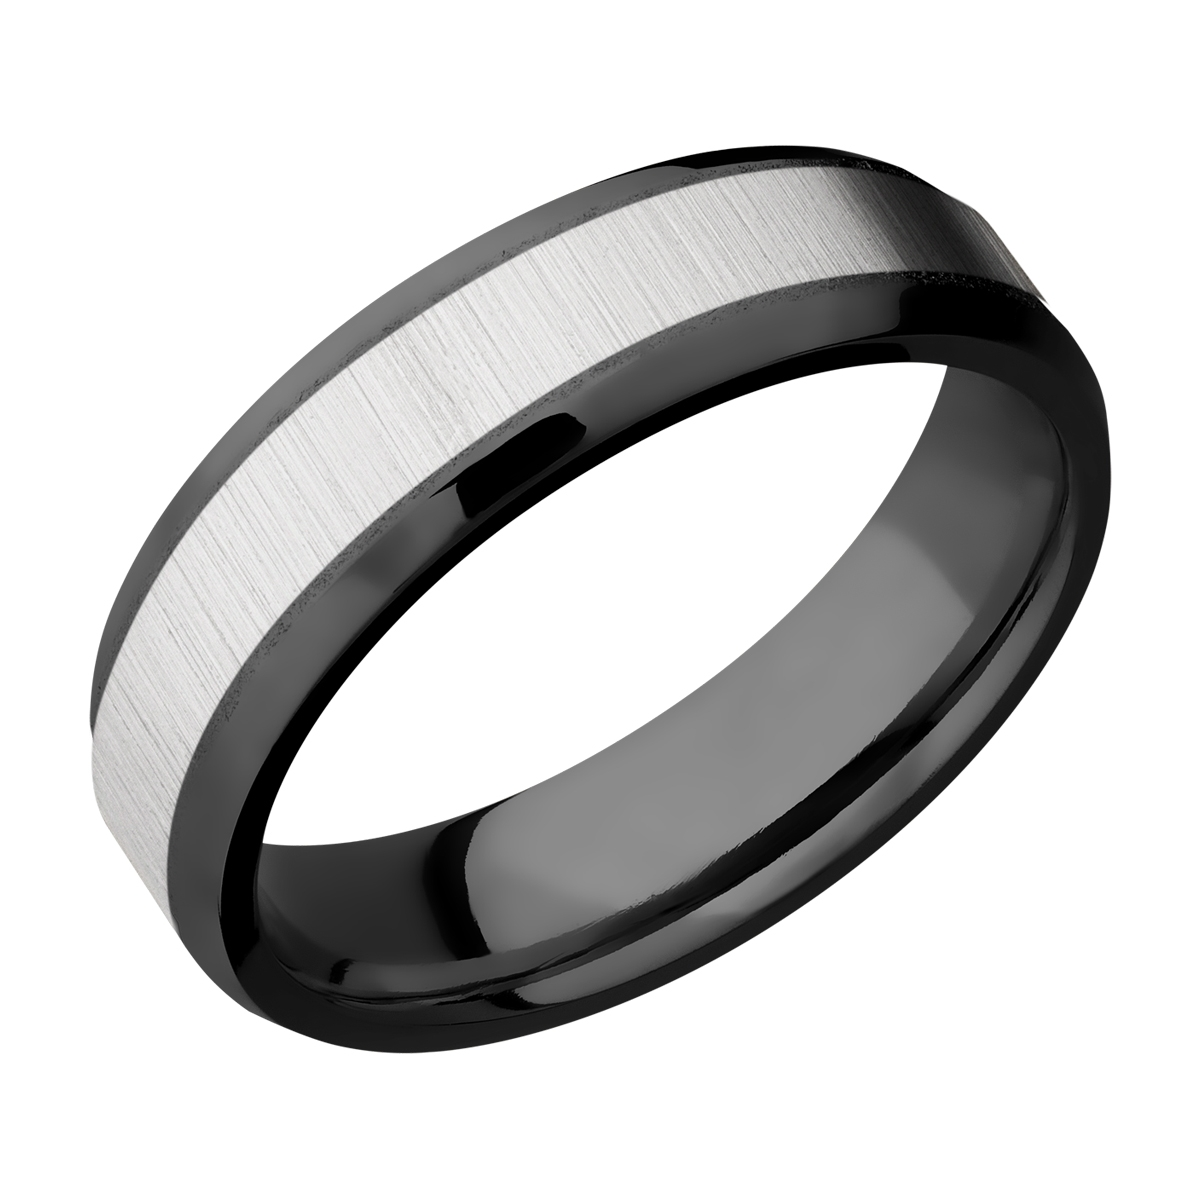 Lashbrook ZPF6B14(NS)/TITANIUM Zirconium Wedding Ring or Band